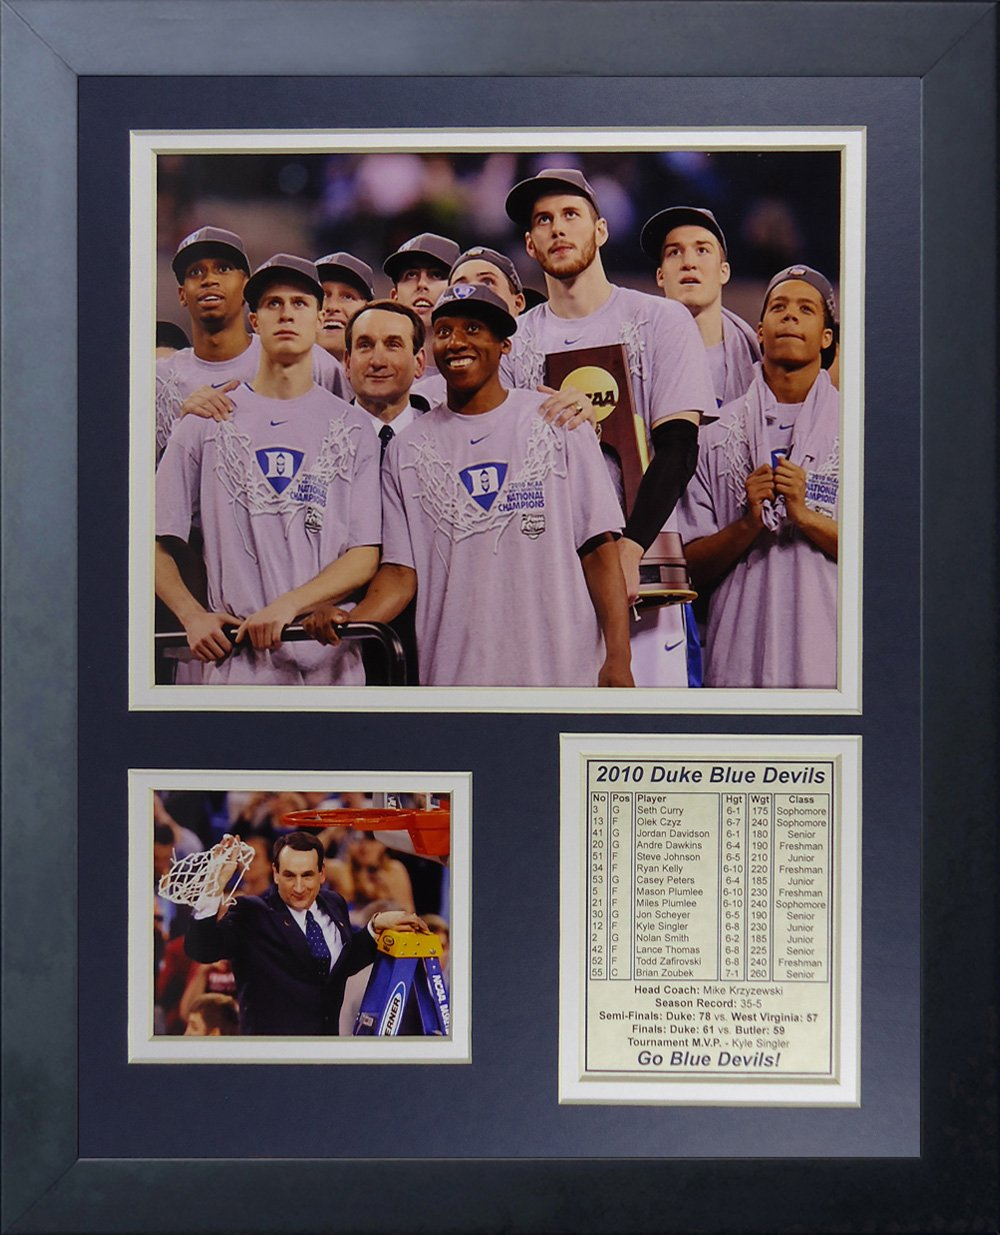 11 x 14 Legends Never Die Duke University Blue Devils 2010 National Champions Podium Collage Photo Frame